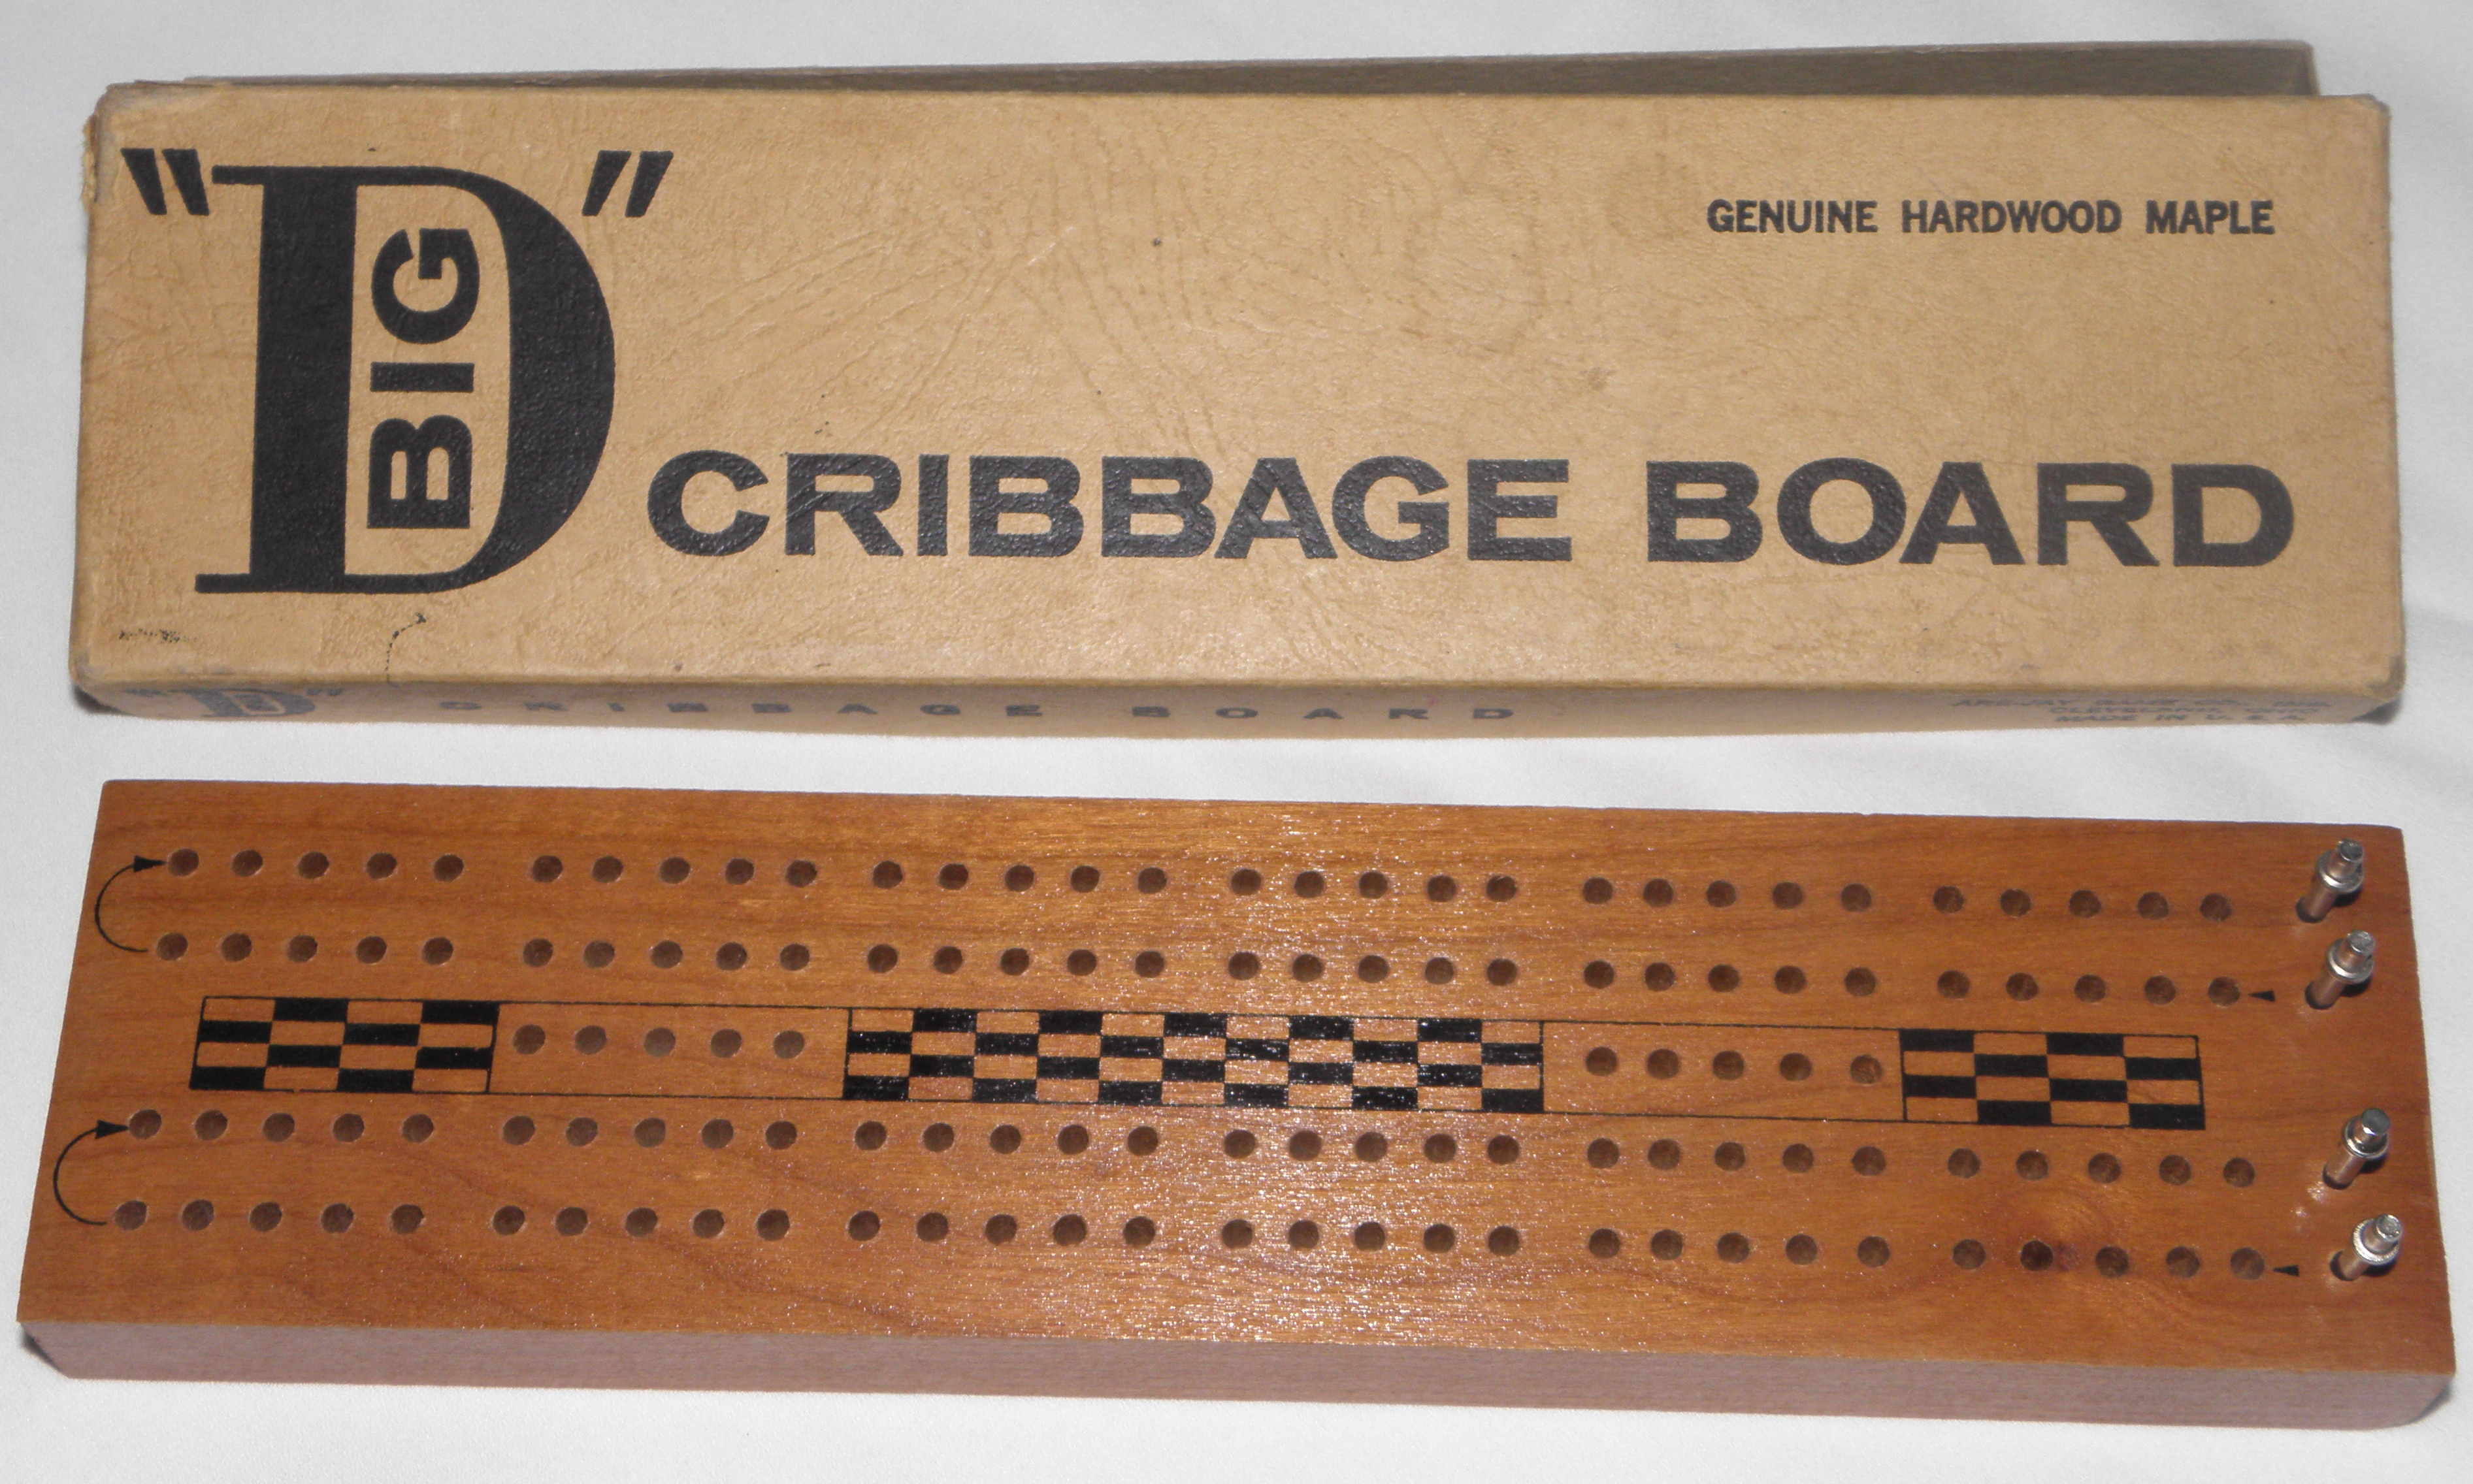 Crib boards for sale uk - Big D Cribbage Board By The Are Jay Company